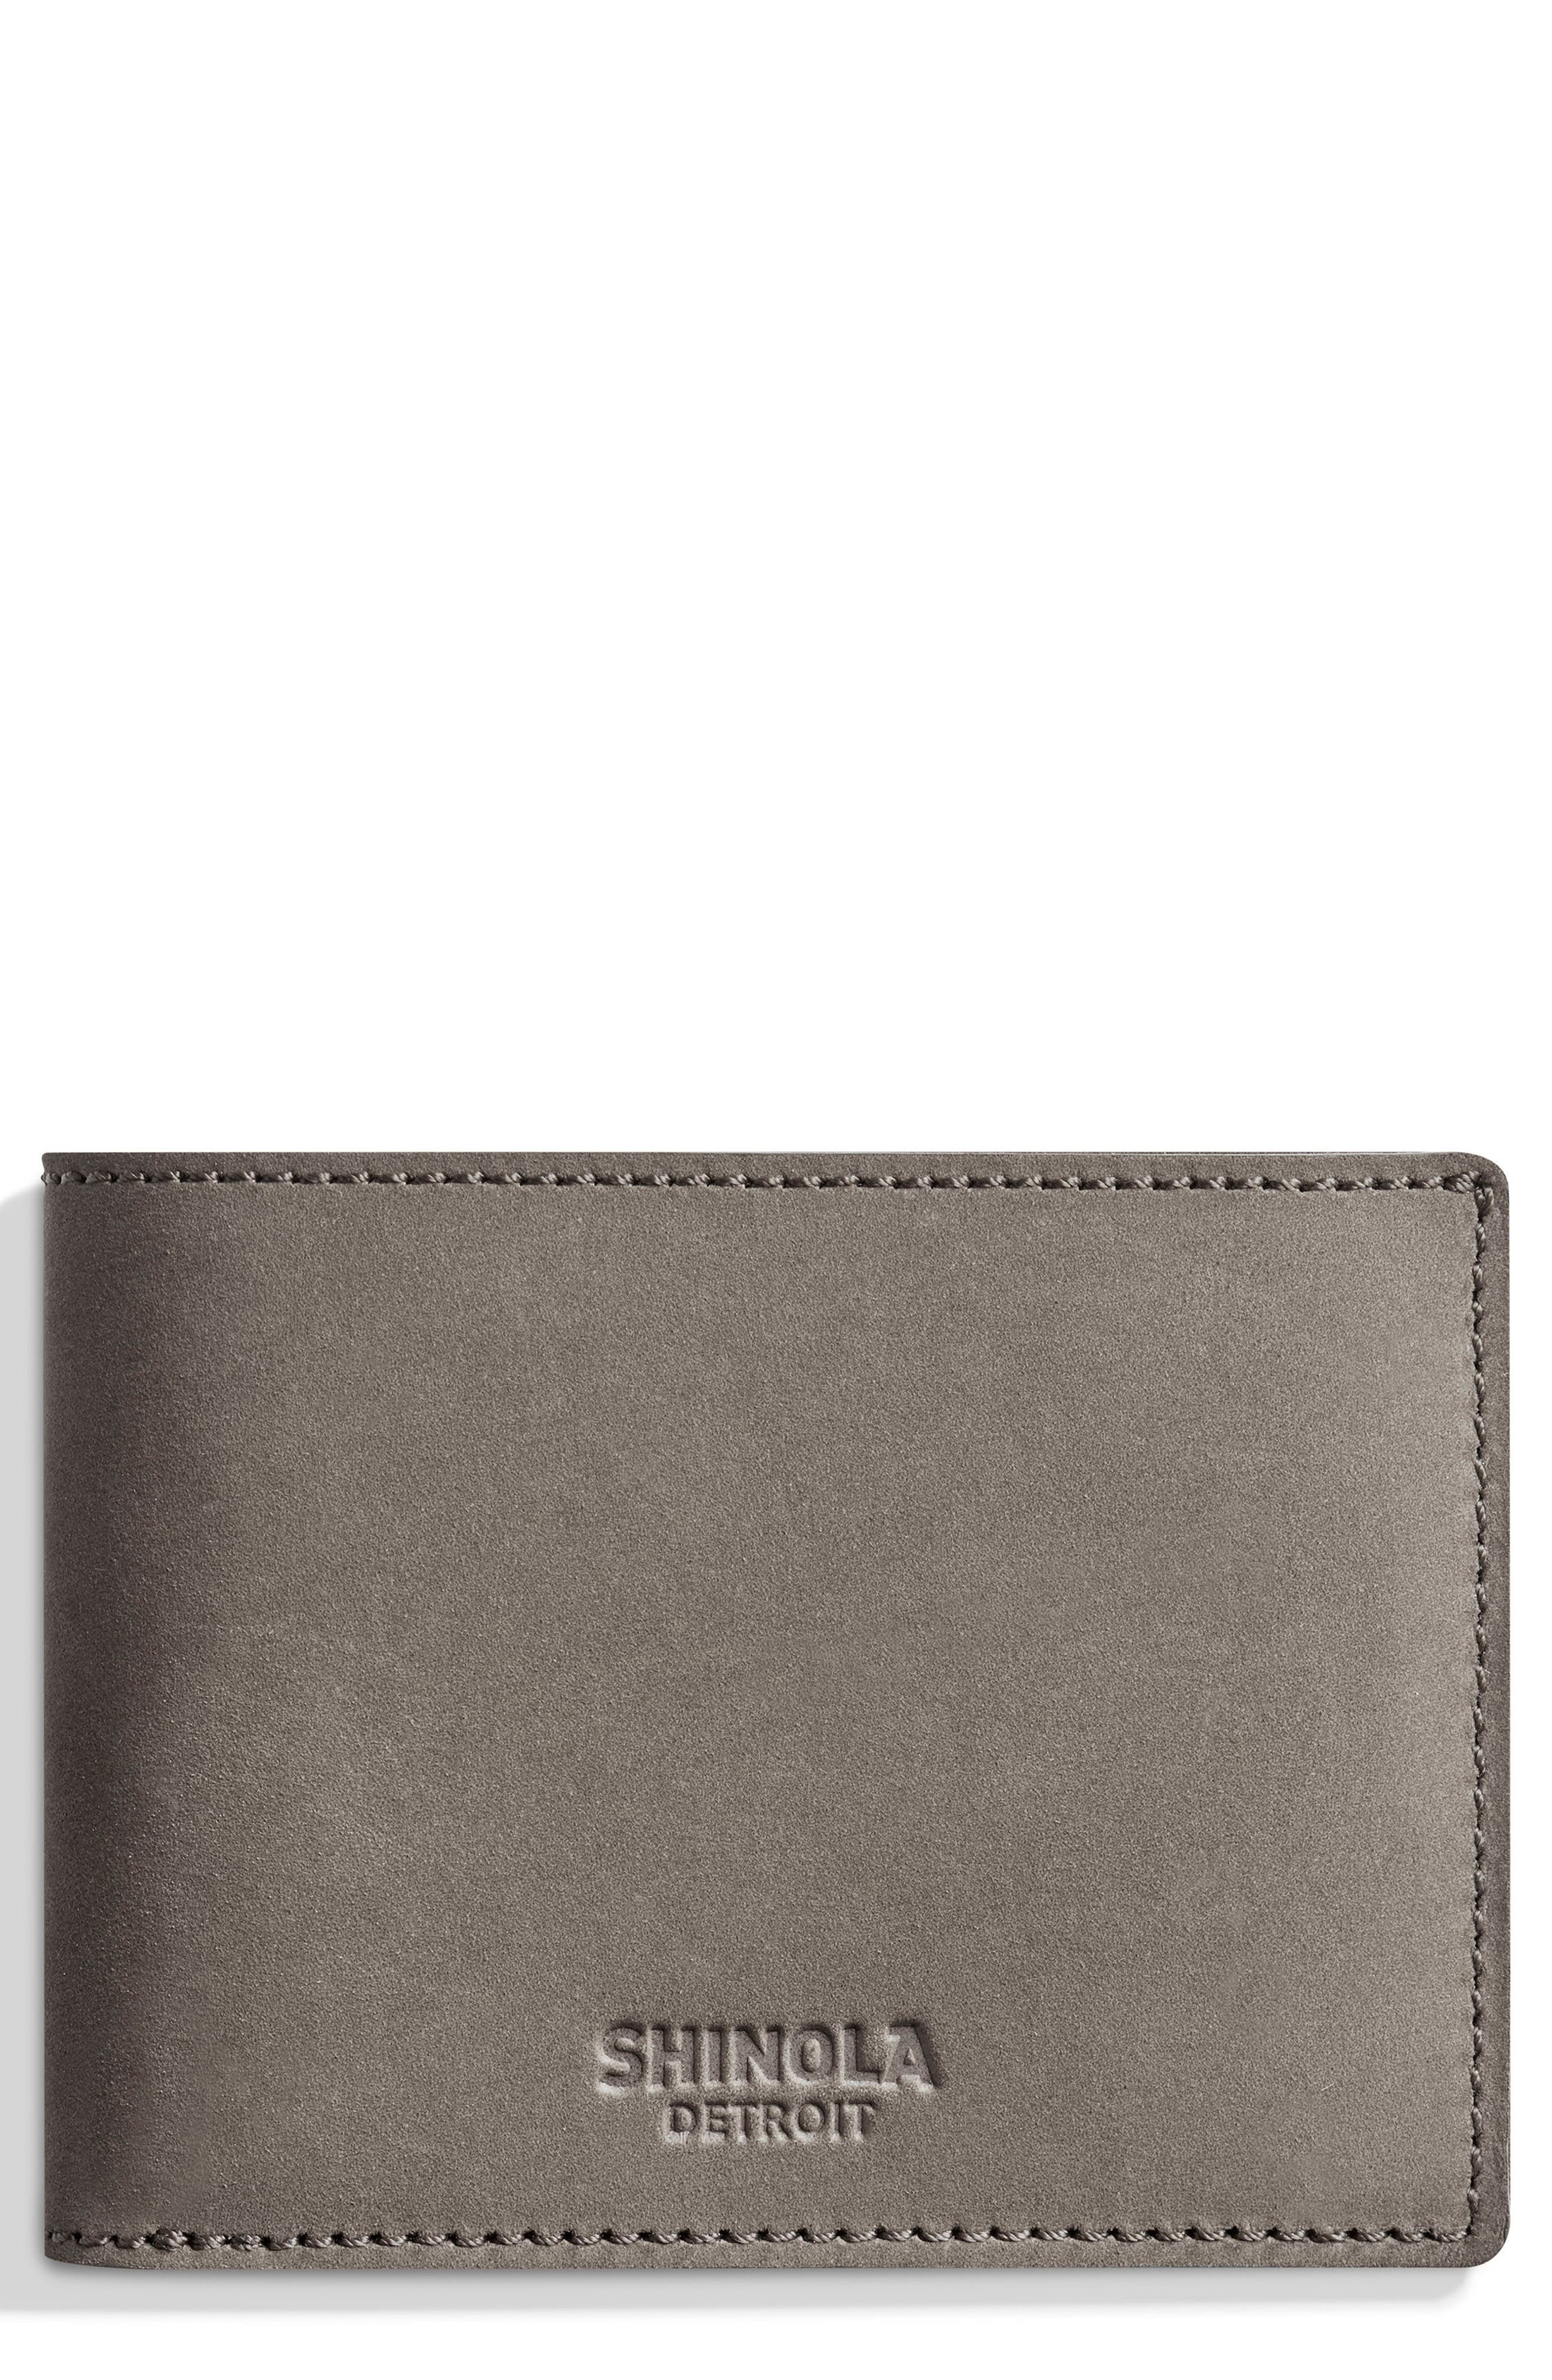 Shinola Outrigger Bifold Leather Wallet